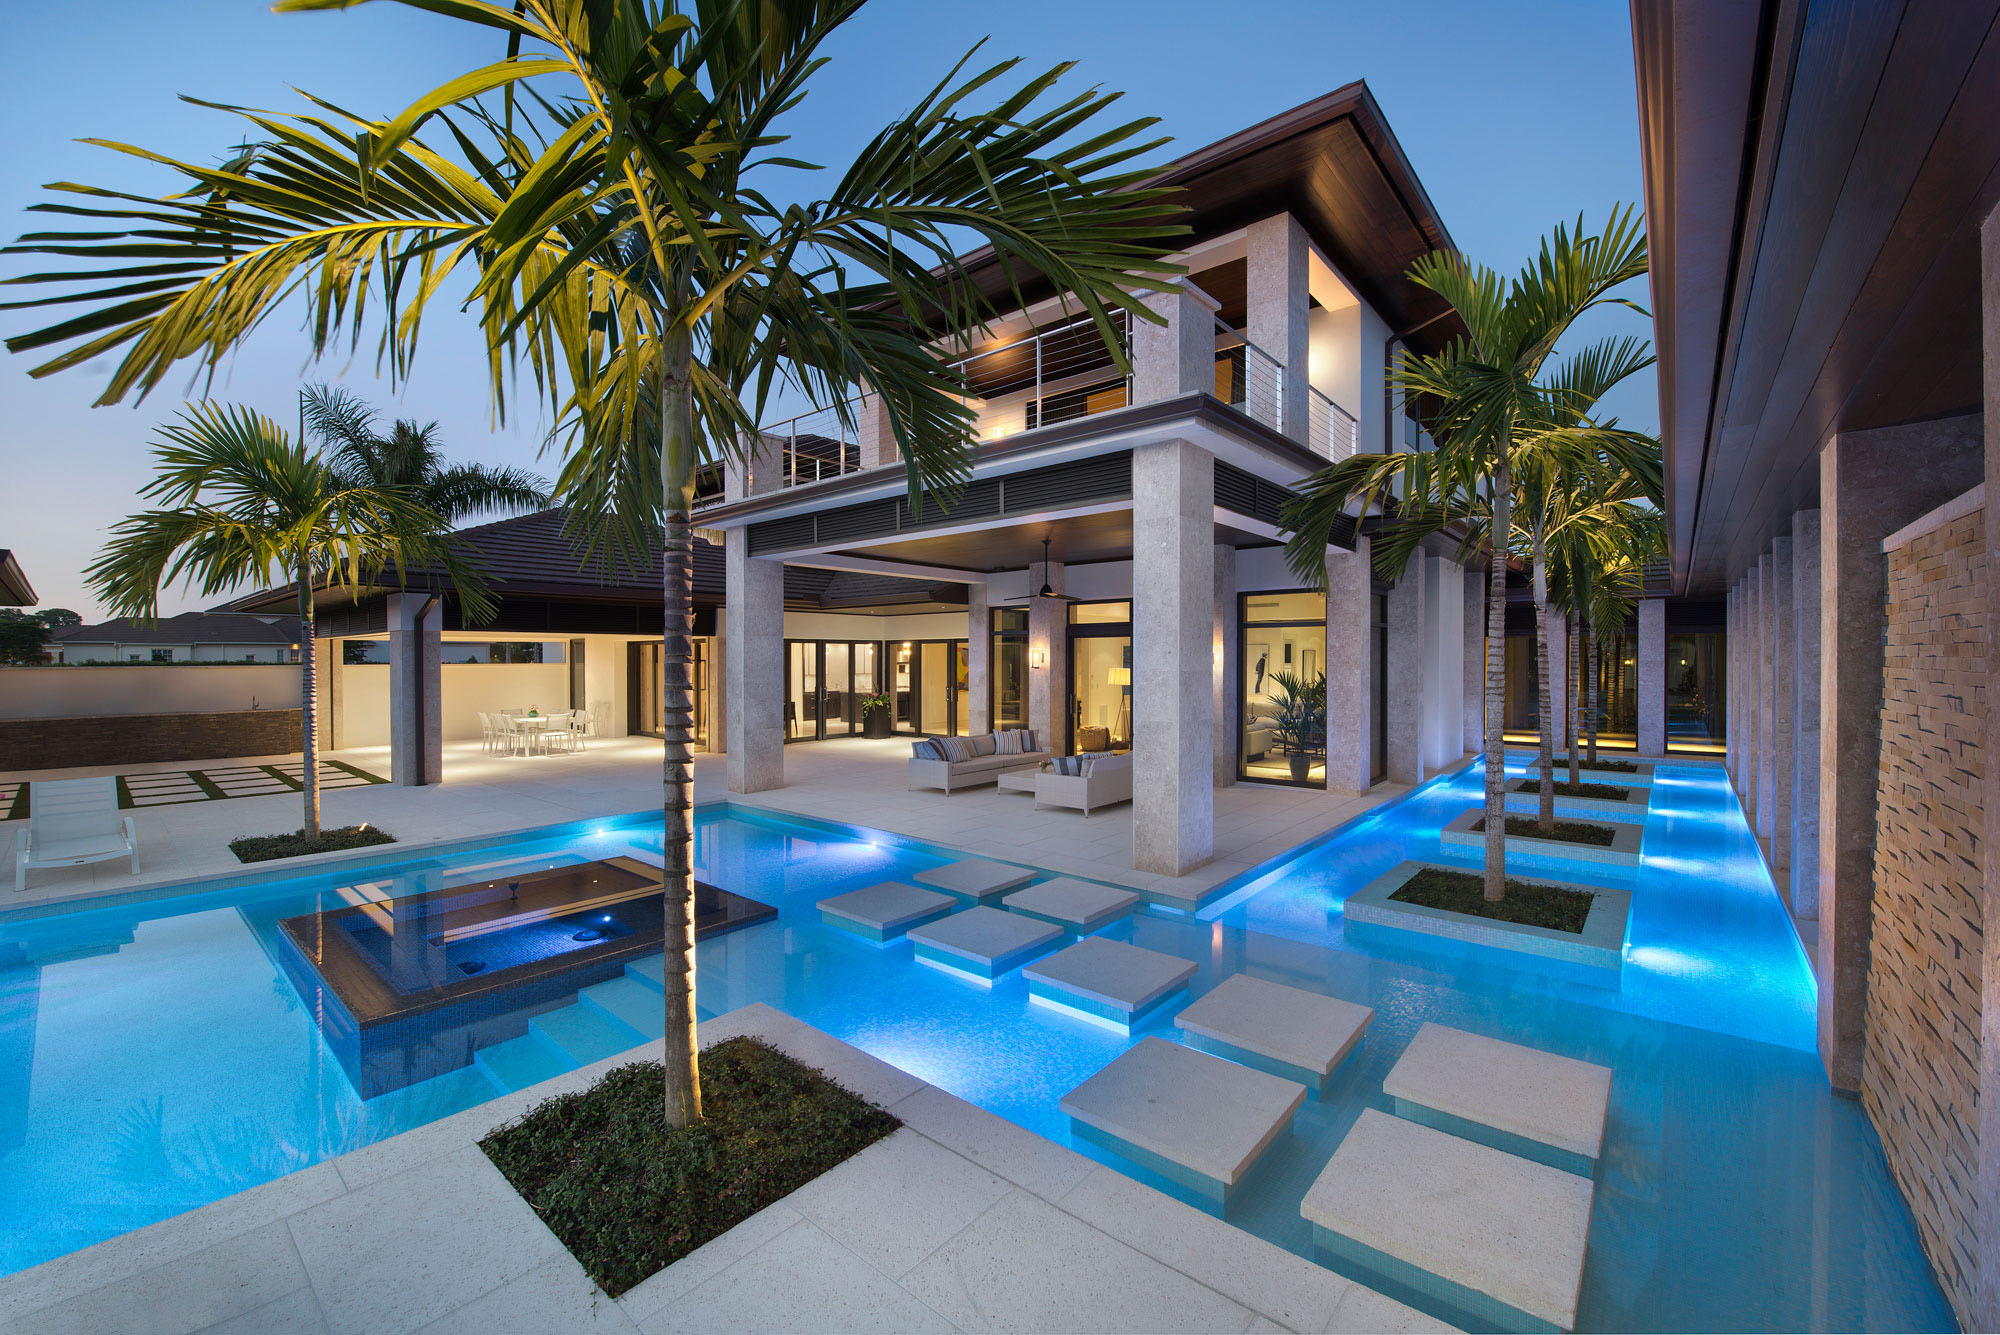 Custom dream home in florida with elegant swimming pool for Luxury pool house plans